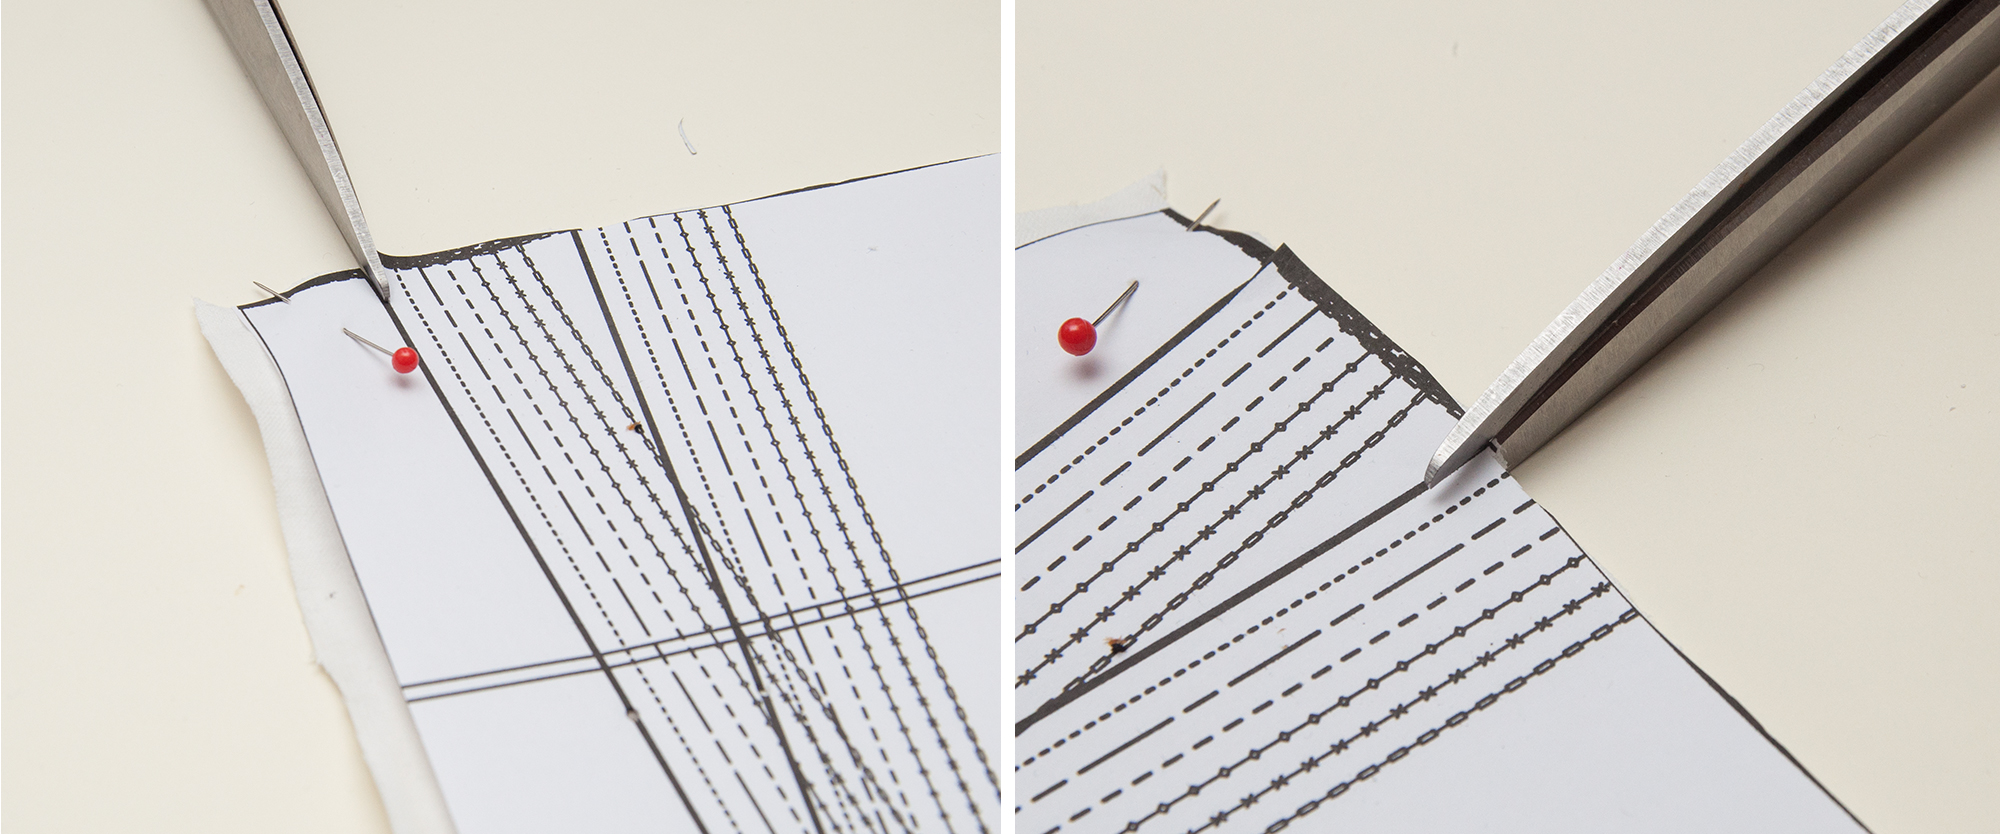 The quick and easy way to sew darts